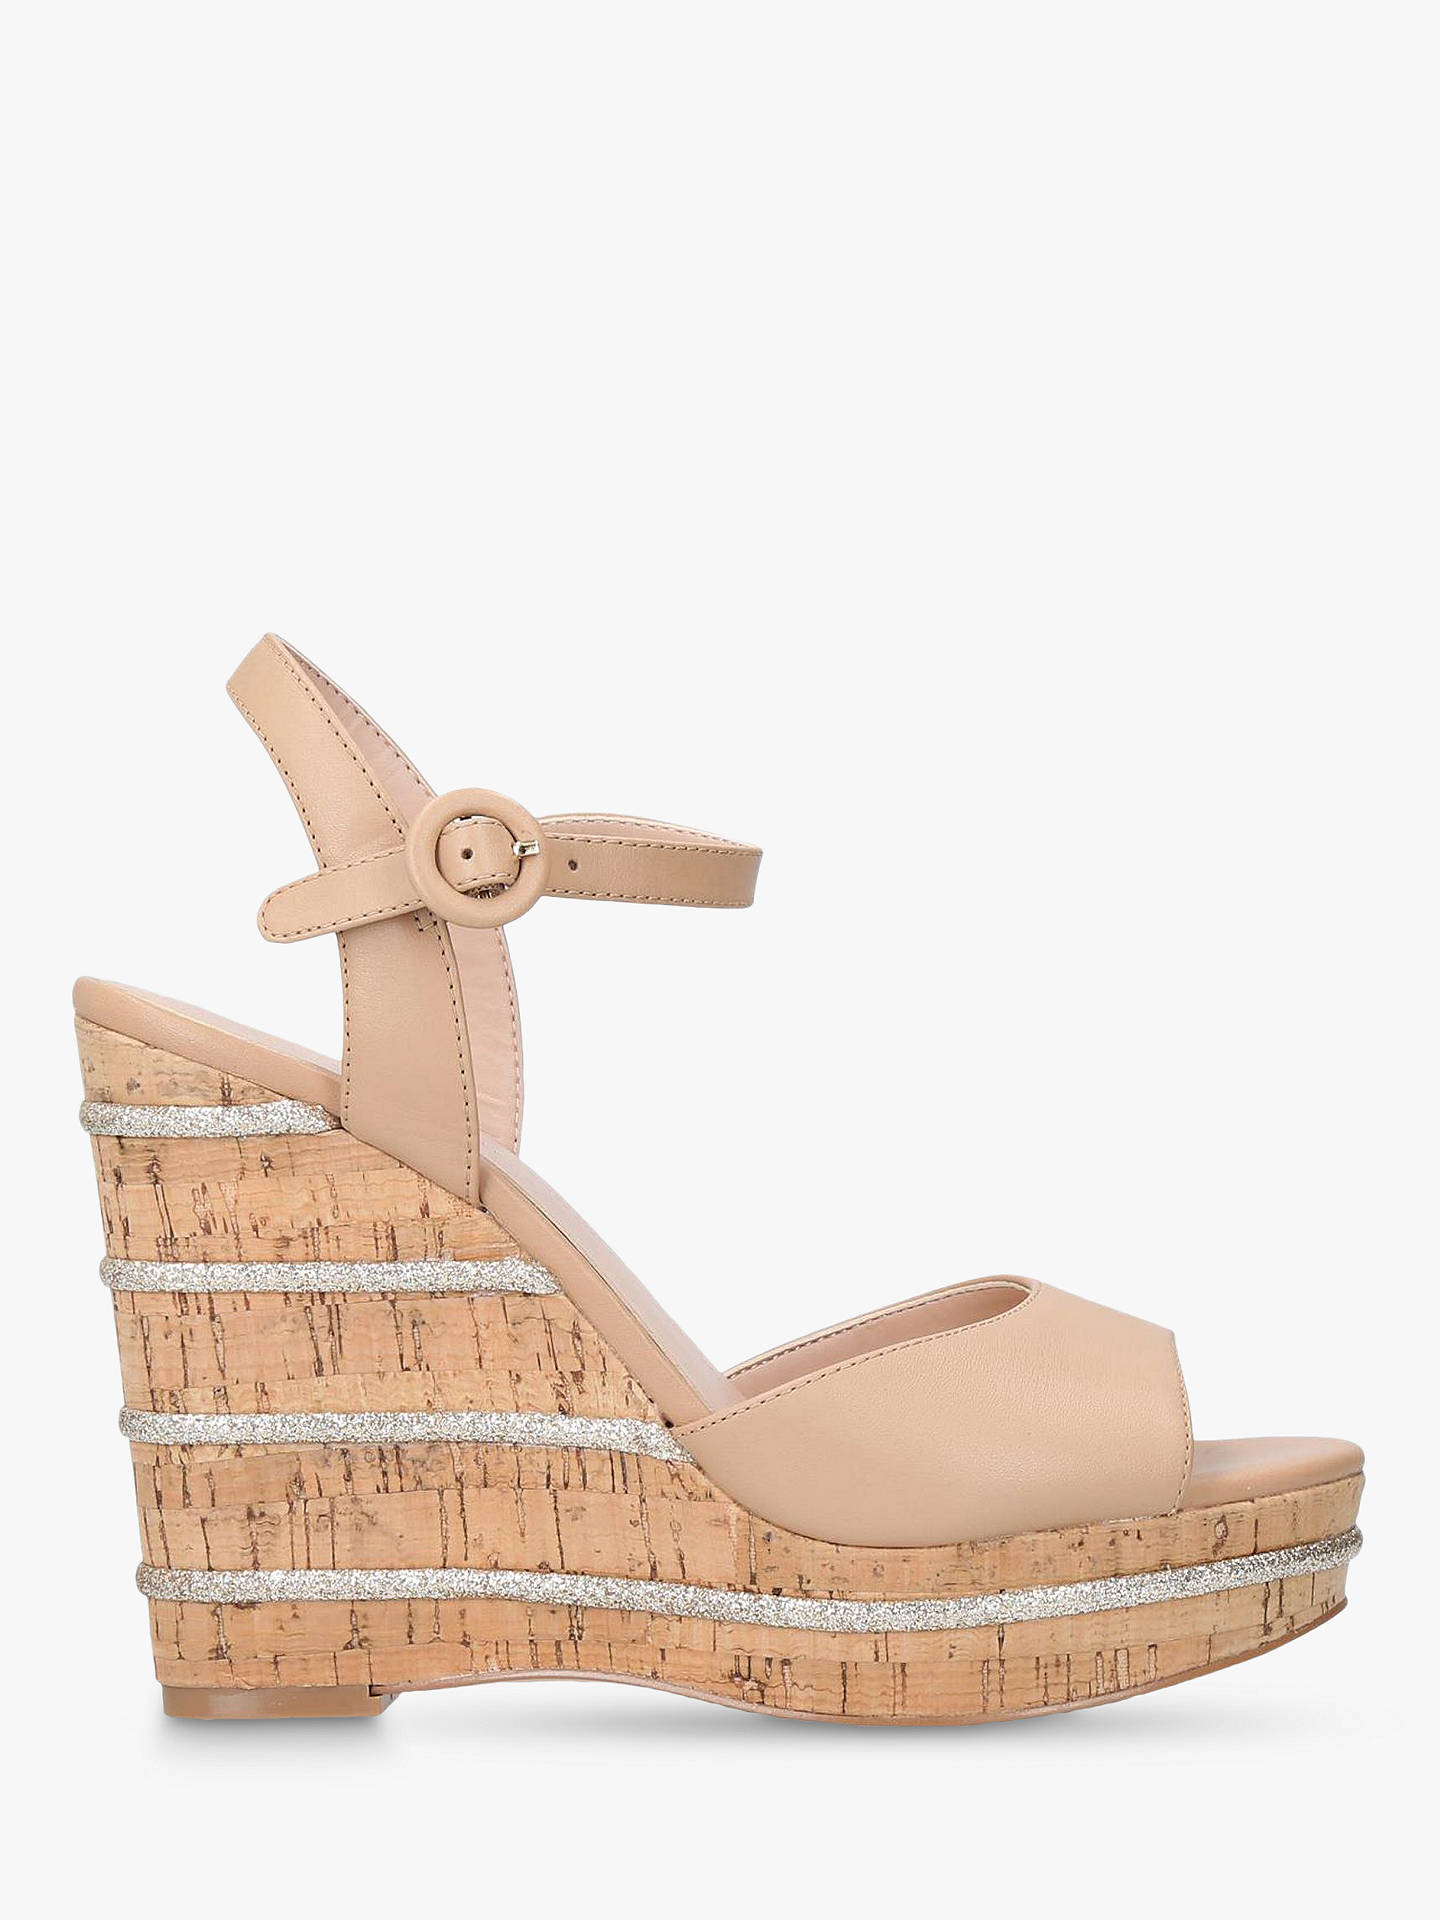 c8aebc76eb9 Kurt Geiger London Ally Wedge Heel Sandals, Tan Leather